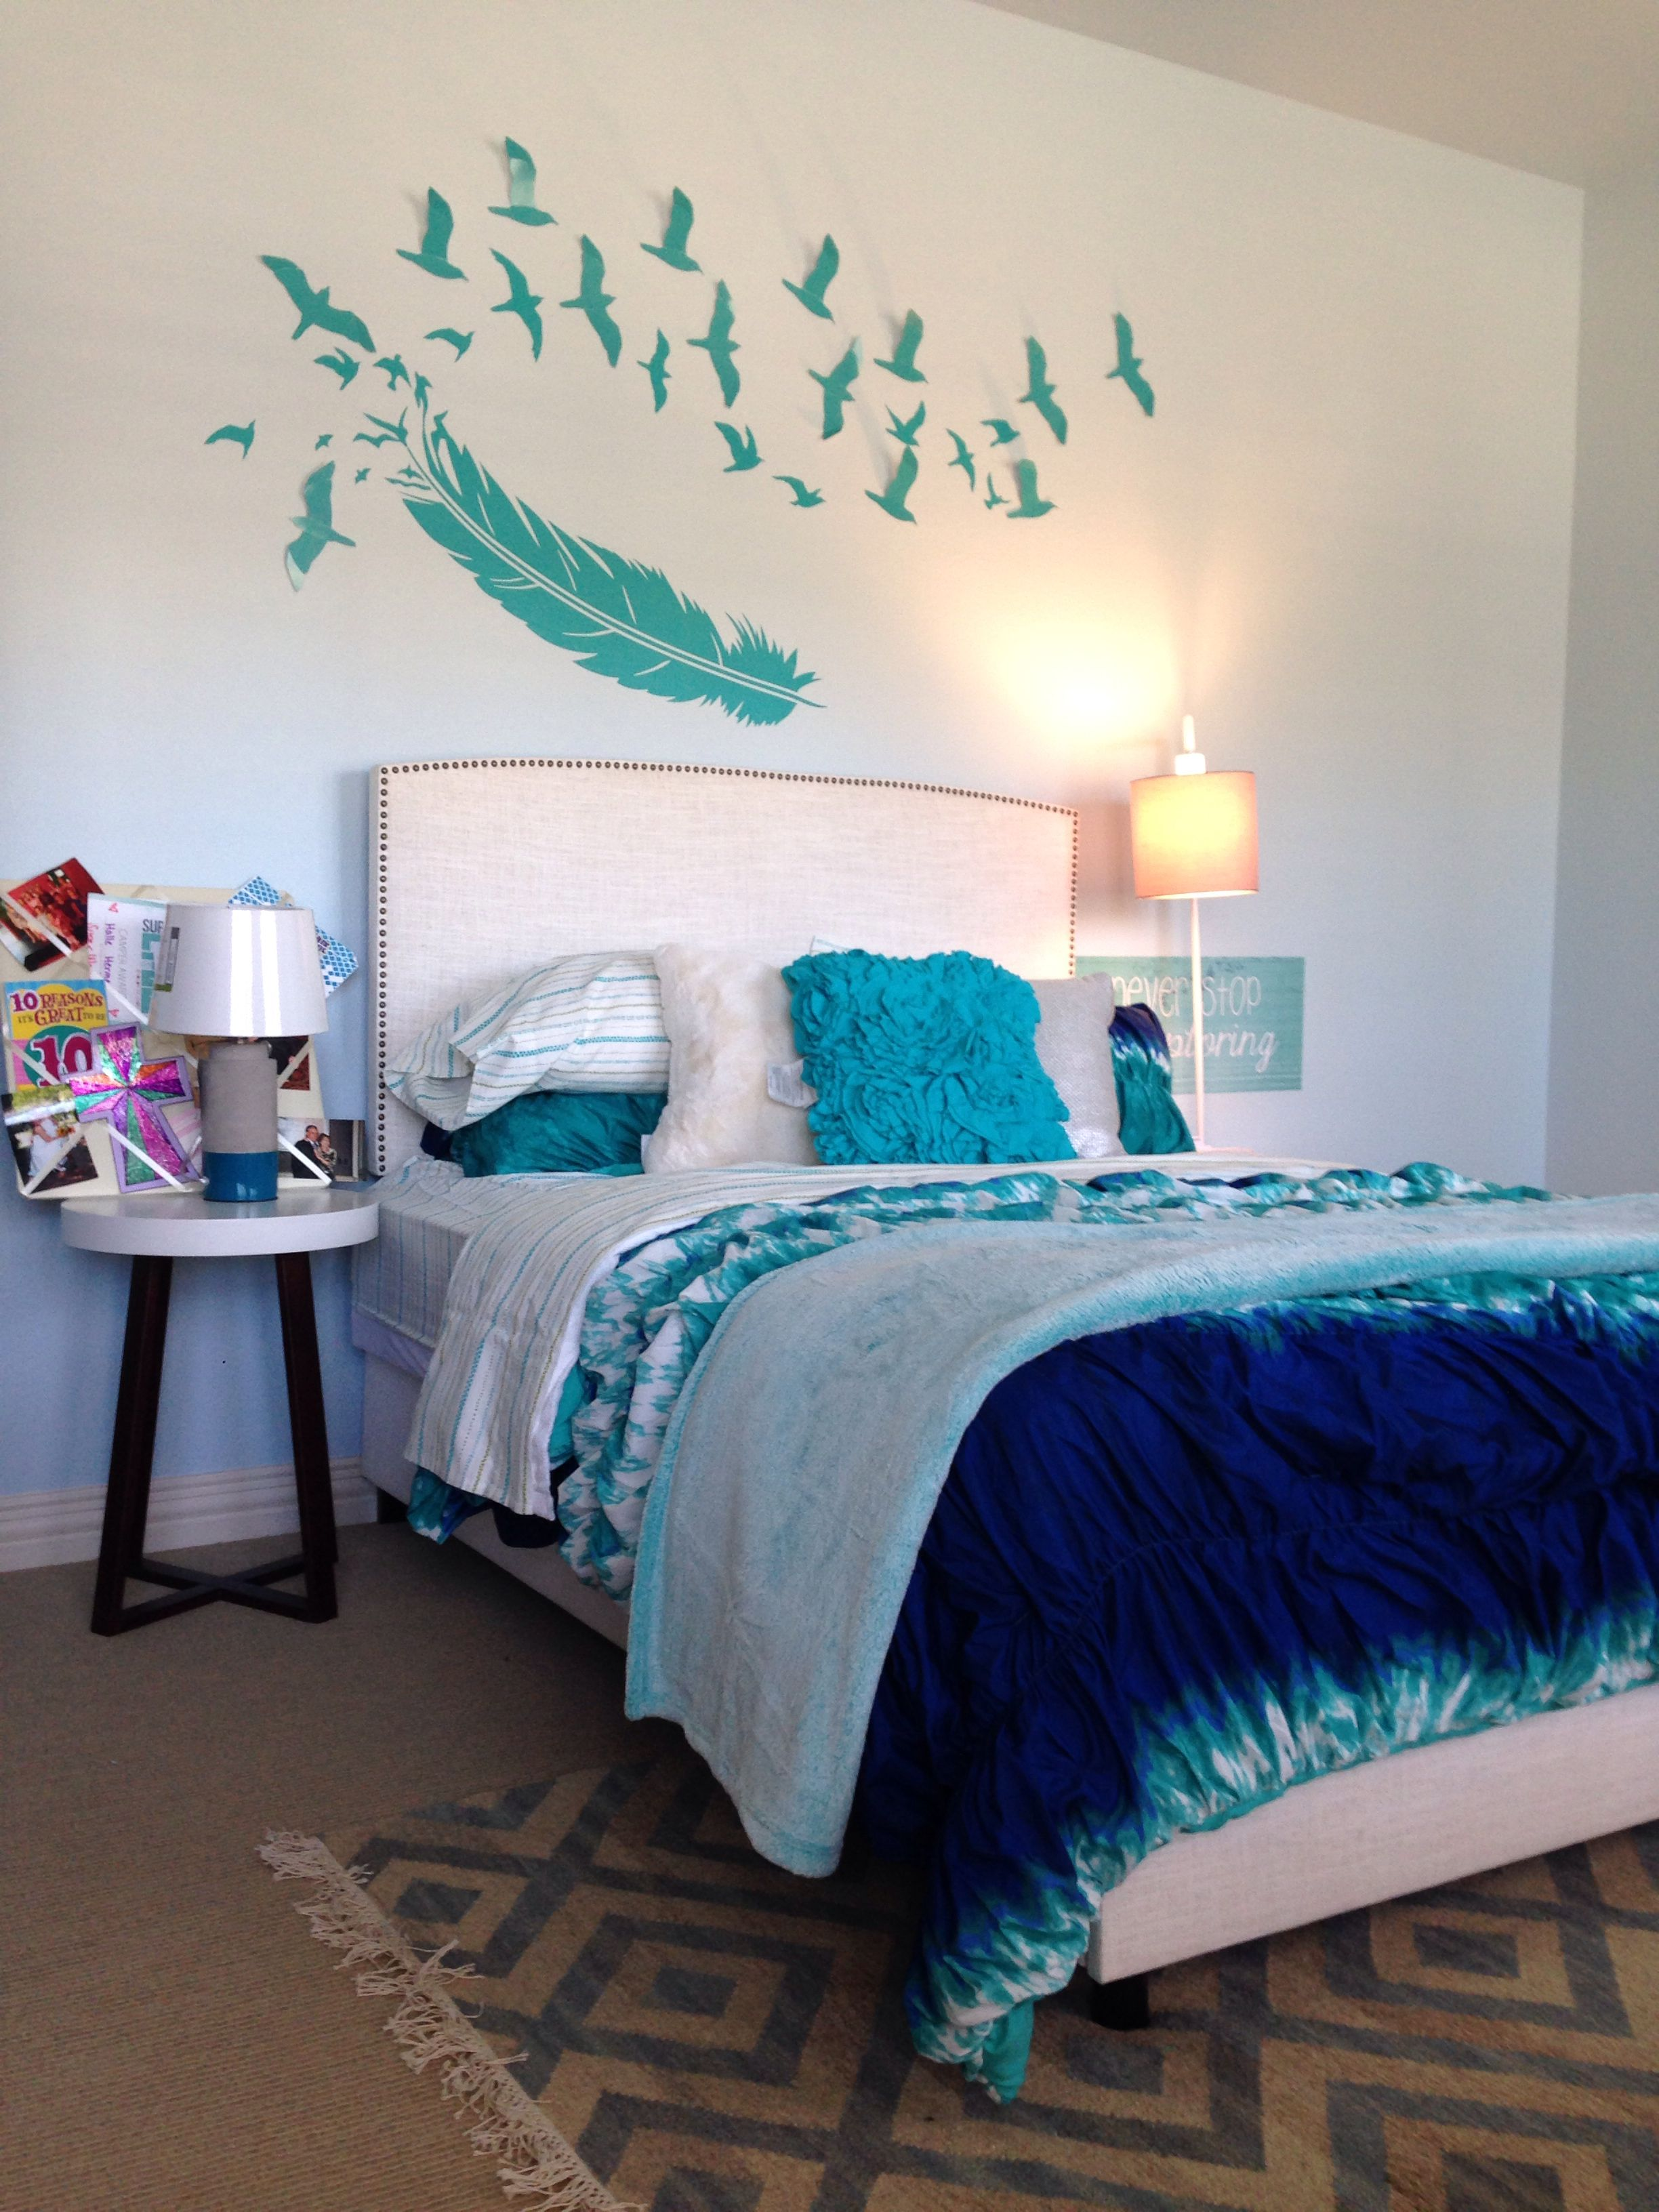 Tween room update on a budget by studio b design group - Teenage girl bedroom ideas on a budget ...